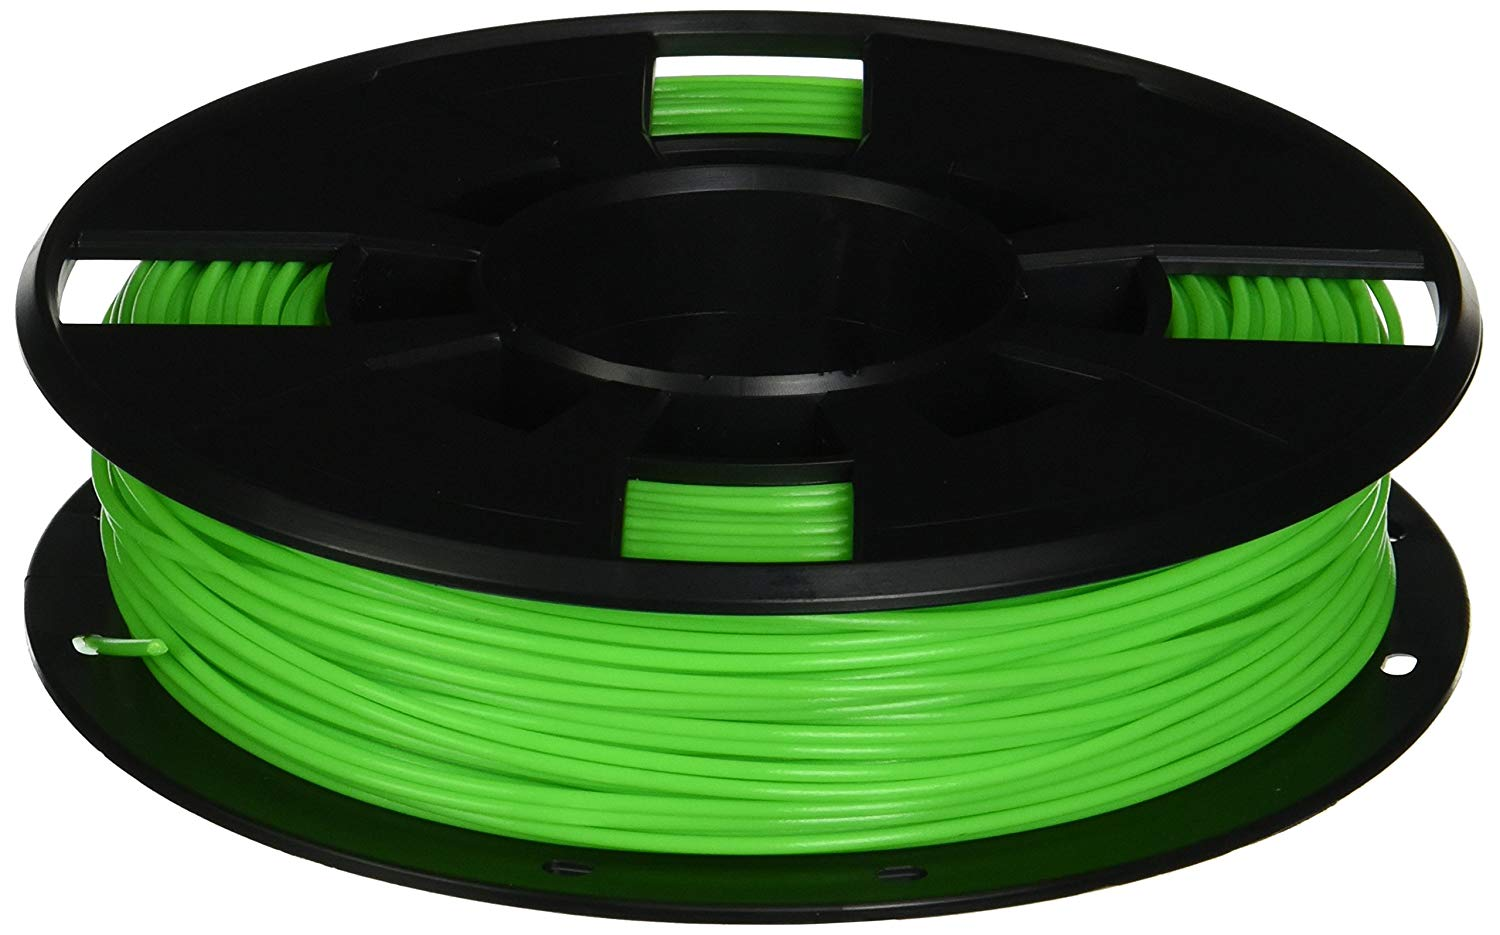 makerbot pla filament pla 3d printer filament